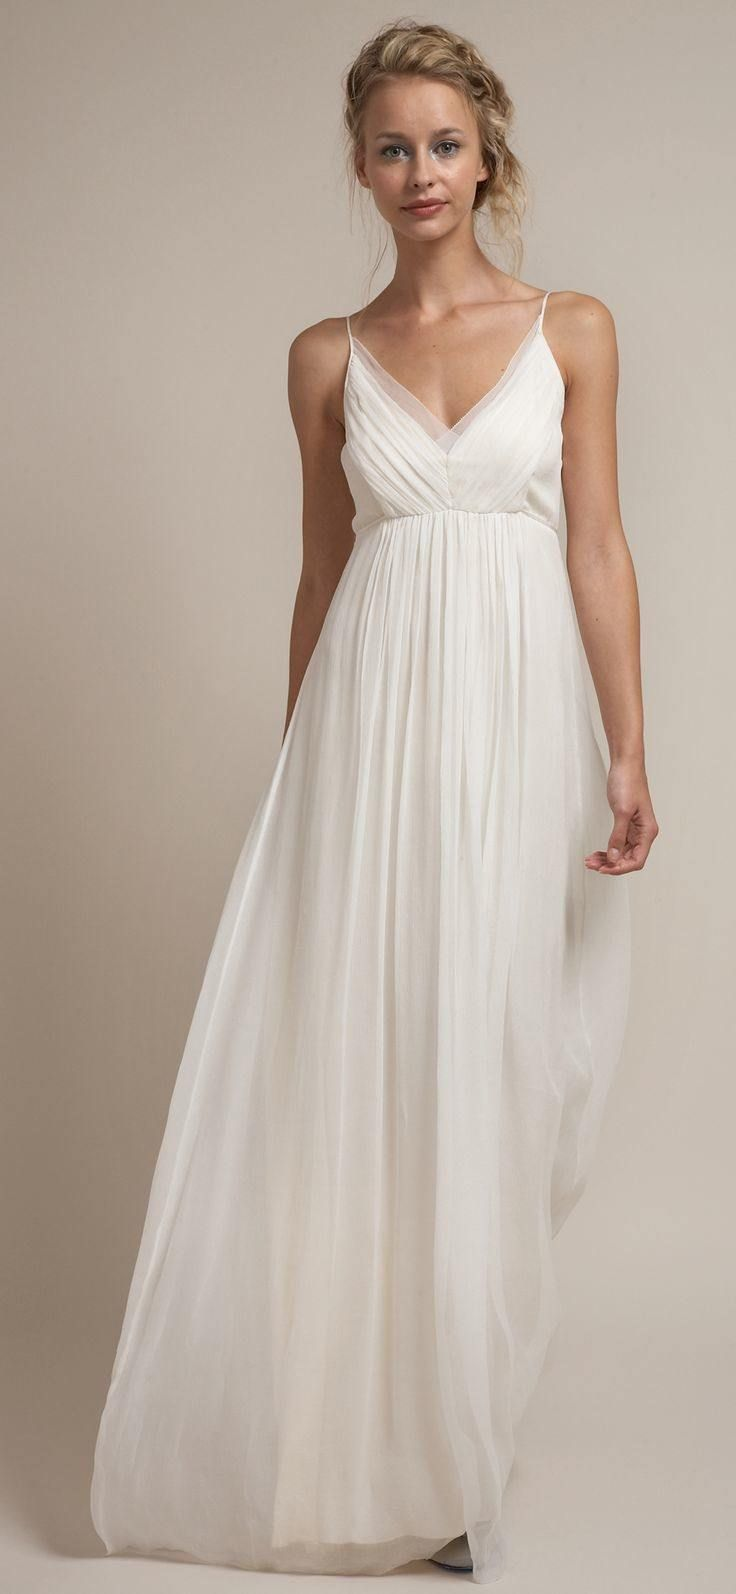 Champagne colored wedding dresses cheap